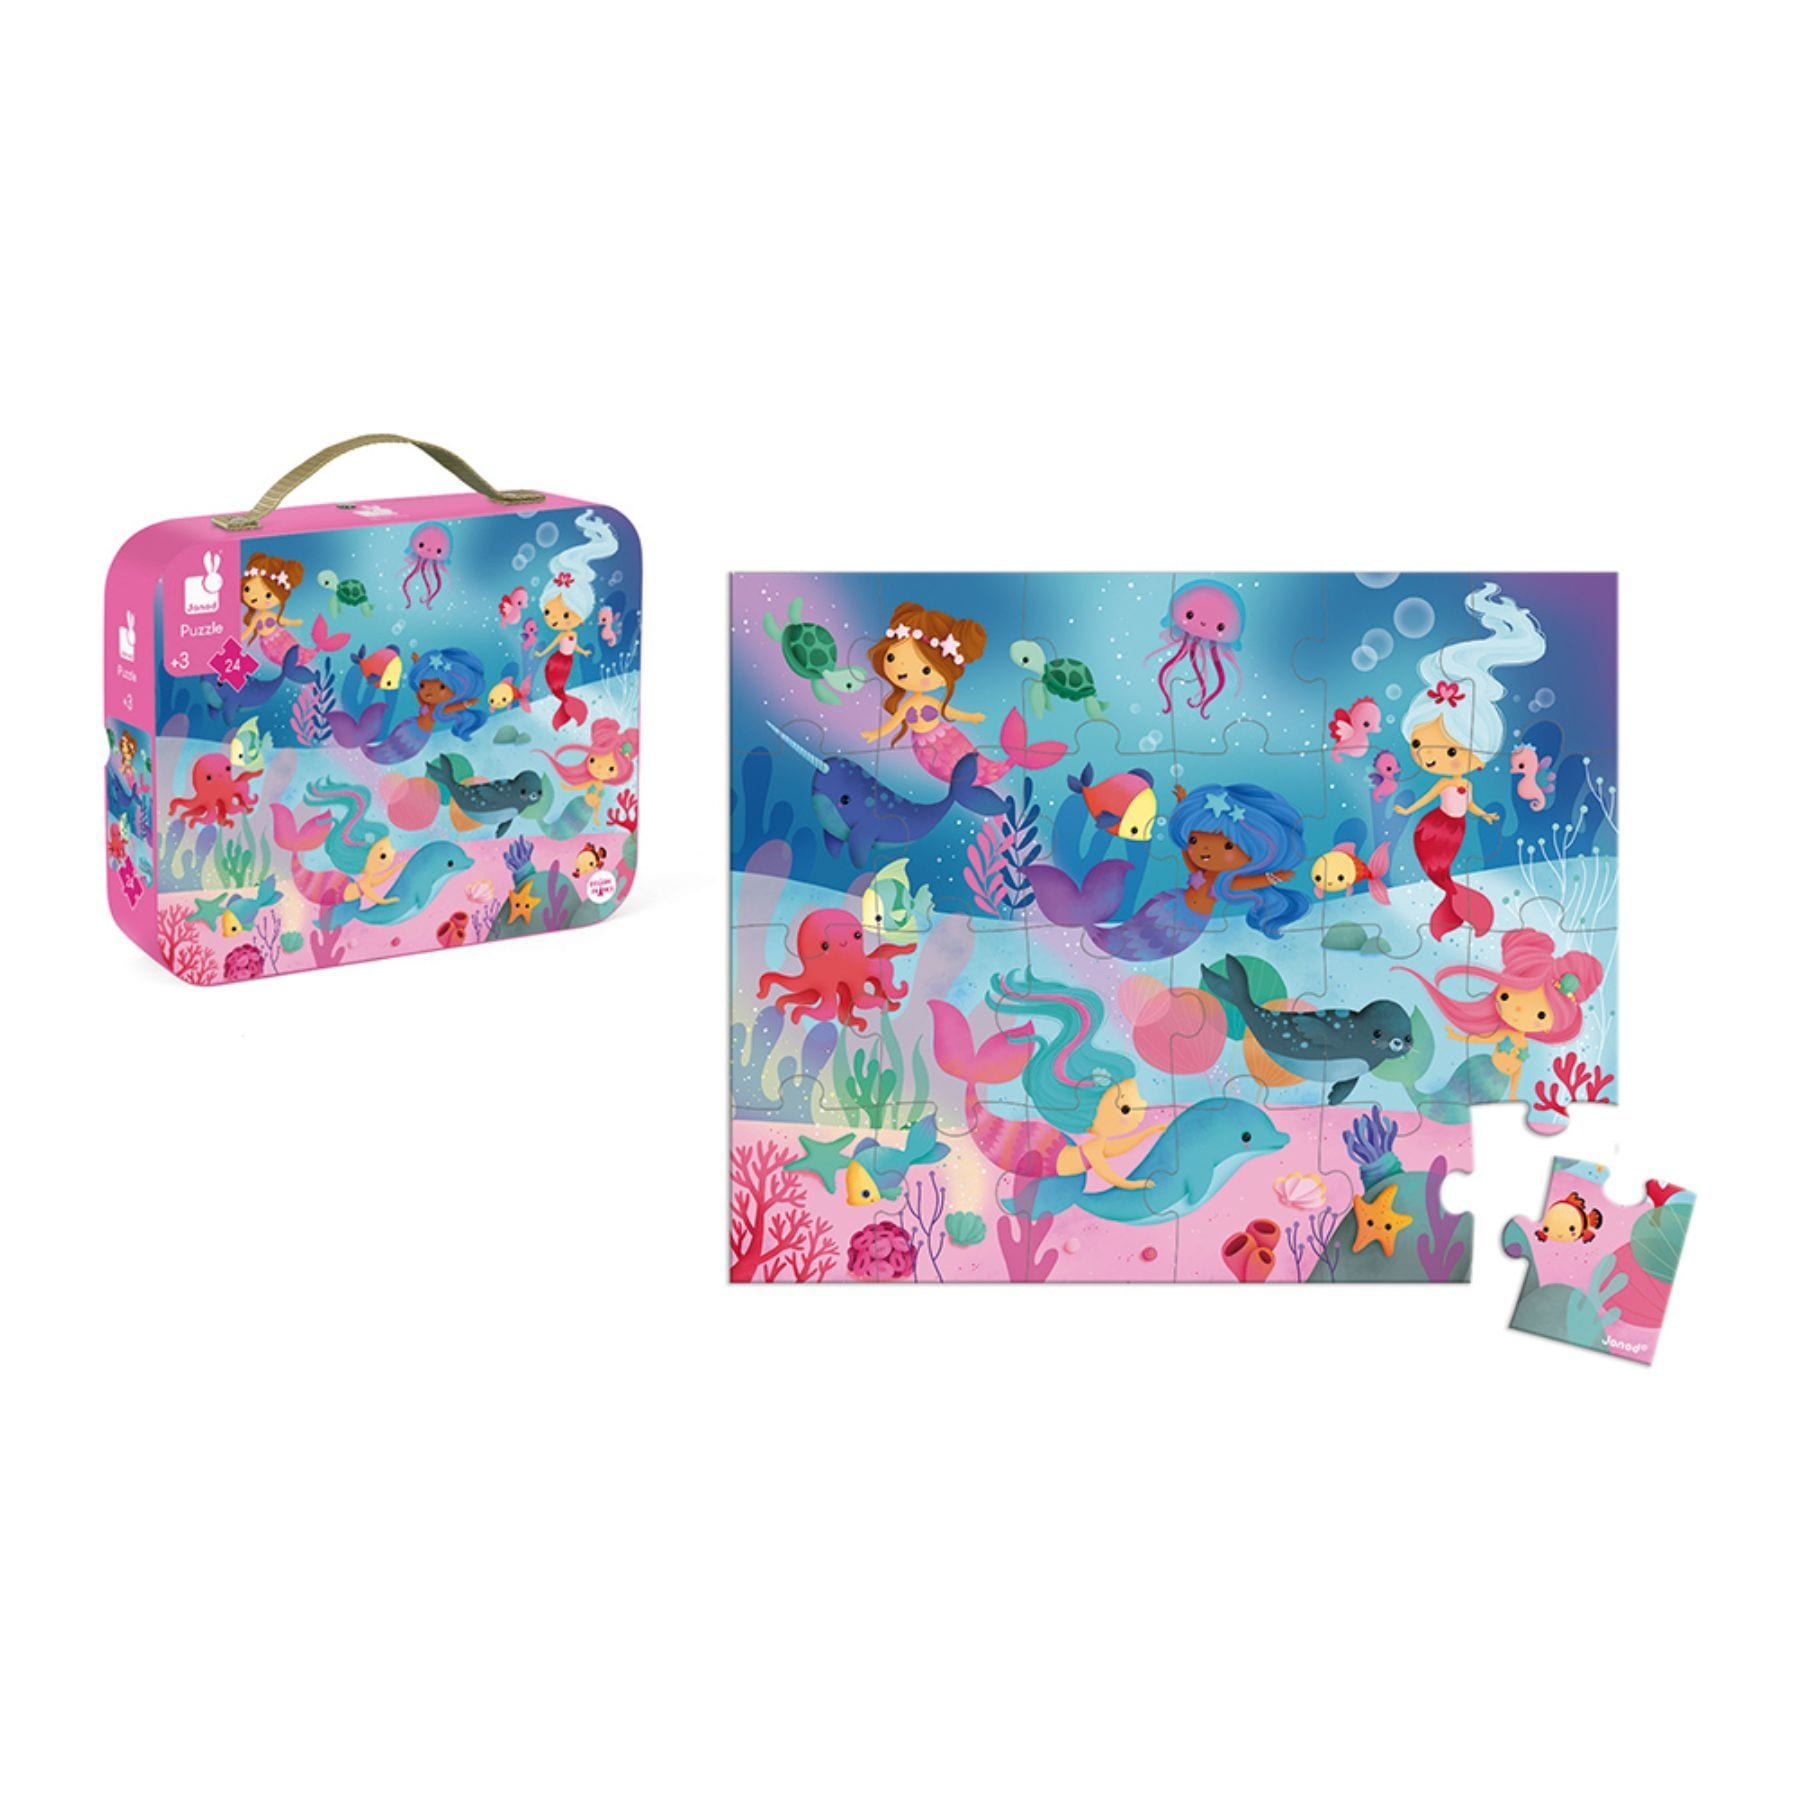 Janod Hat Boxed 24 Piece Puzzle - Mermaids